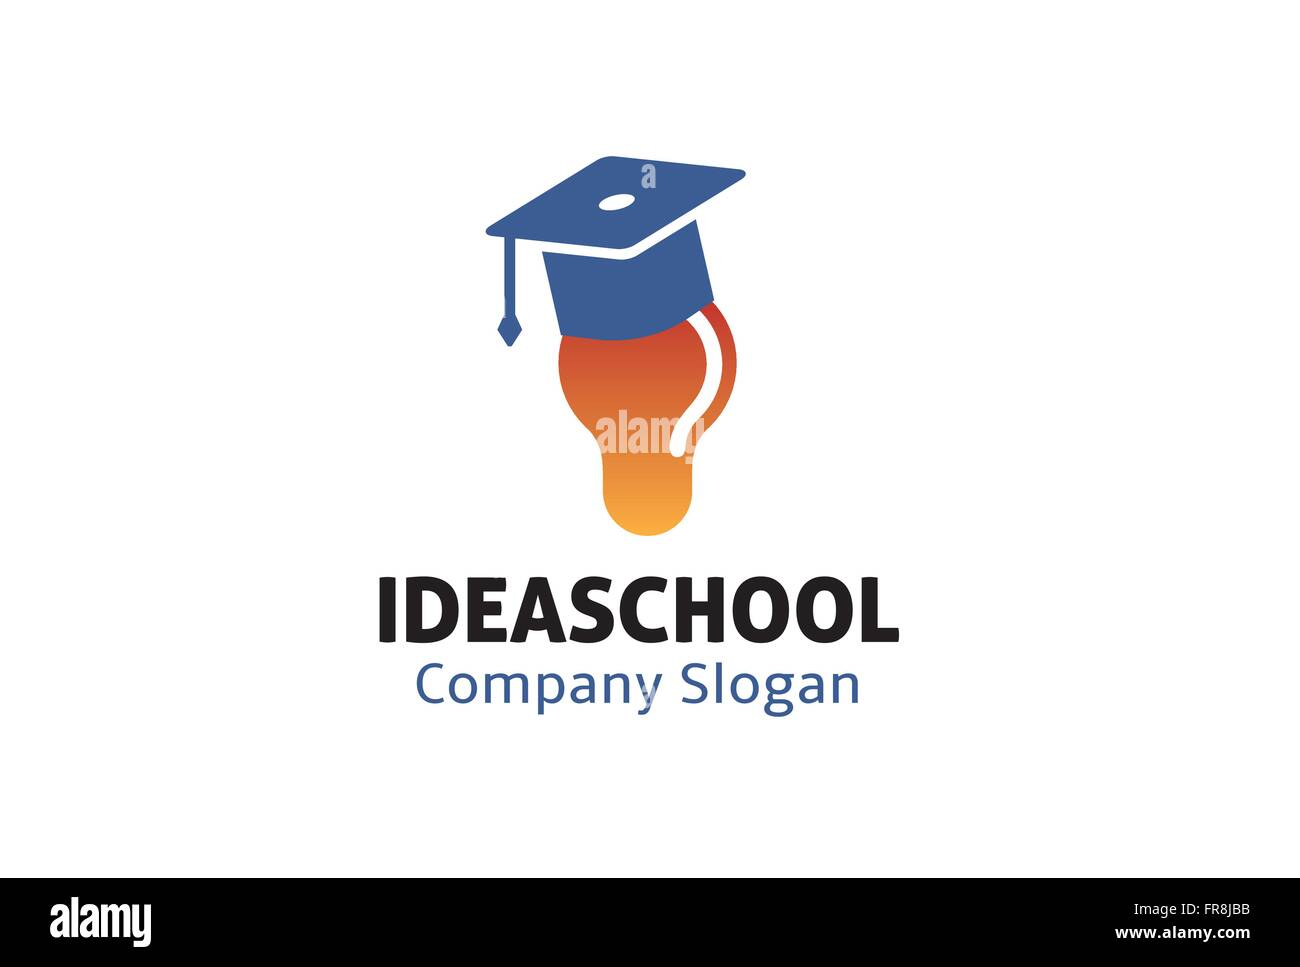 Idea School Design Illustration - Stock Vector